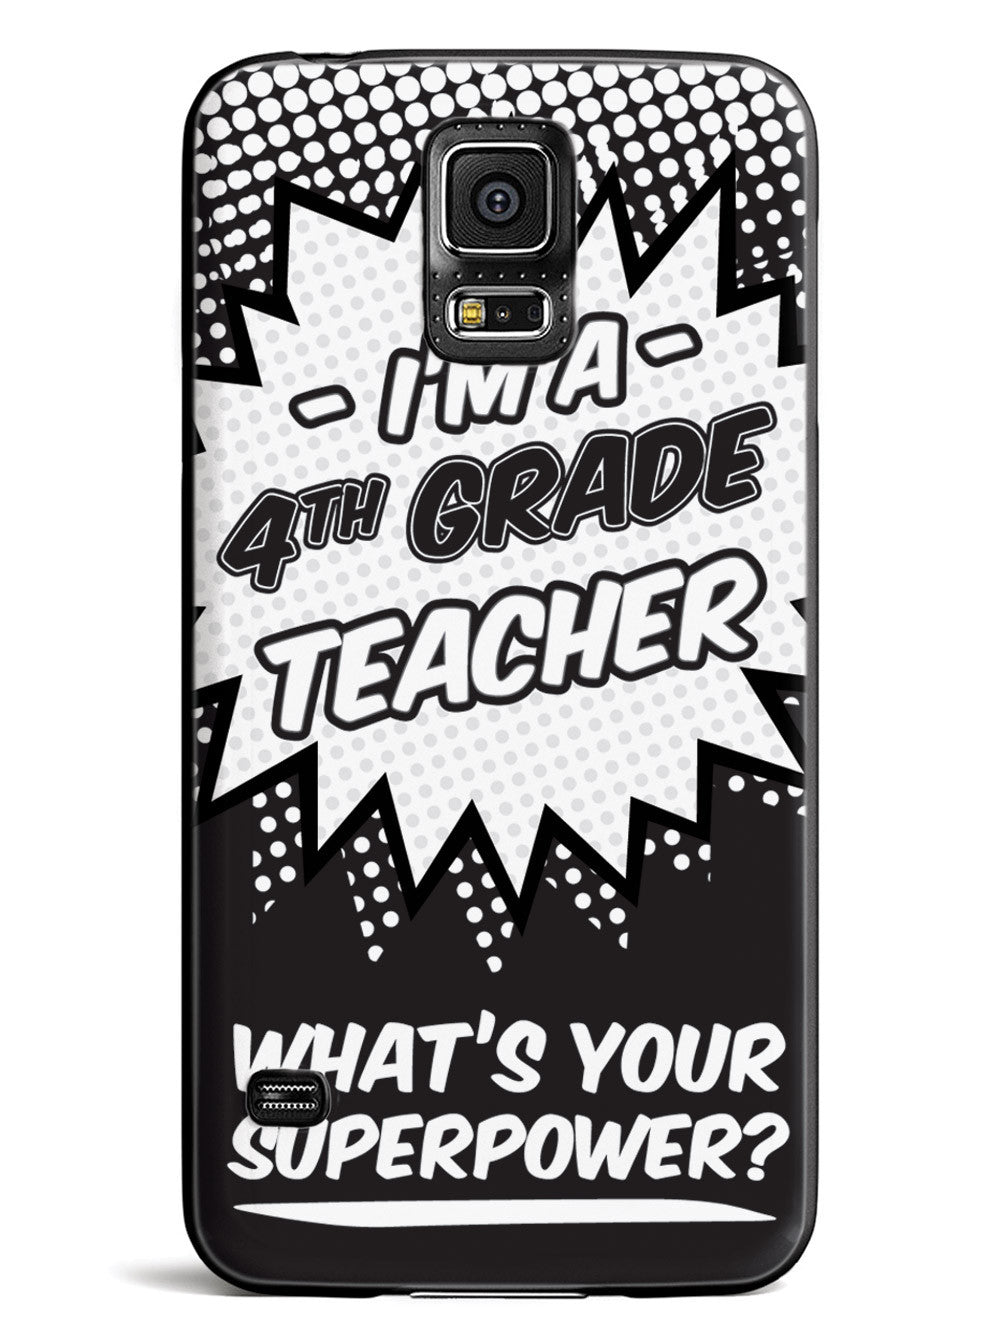 4th Grade Teacher - What's Your Superpower? Case